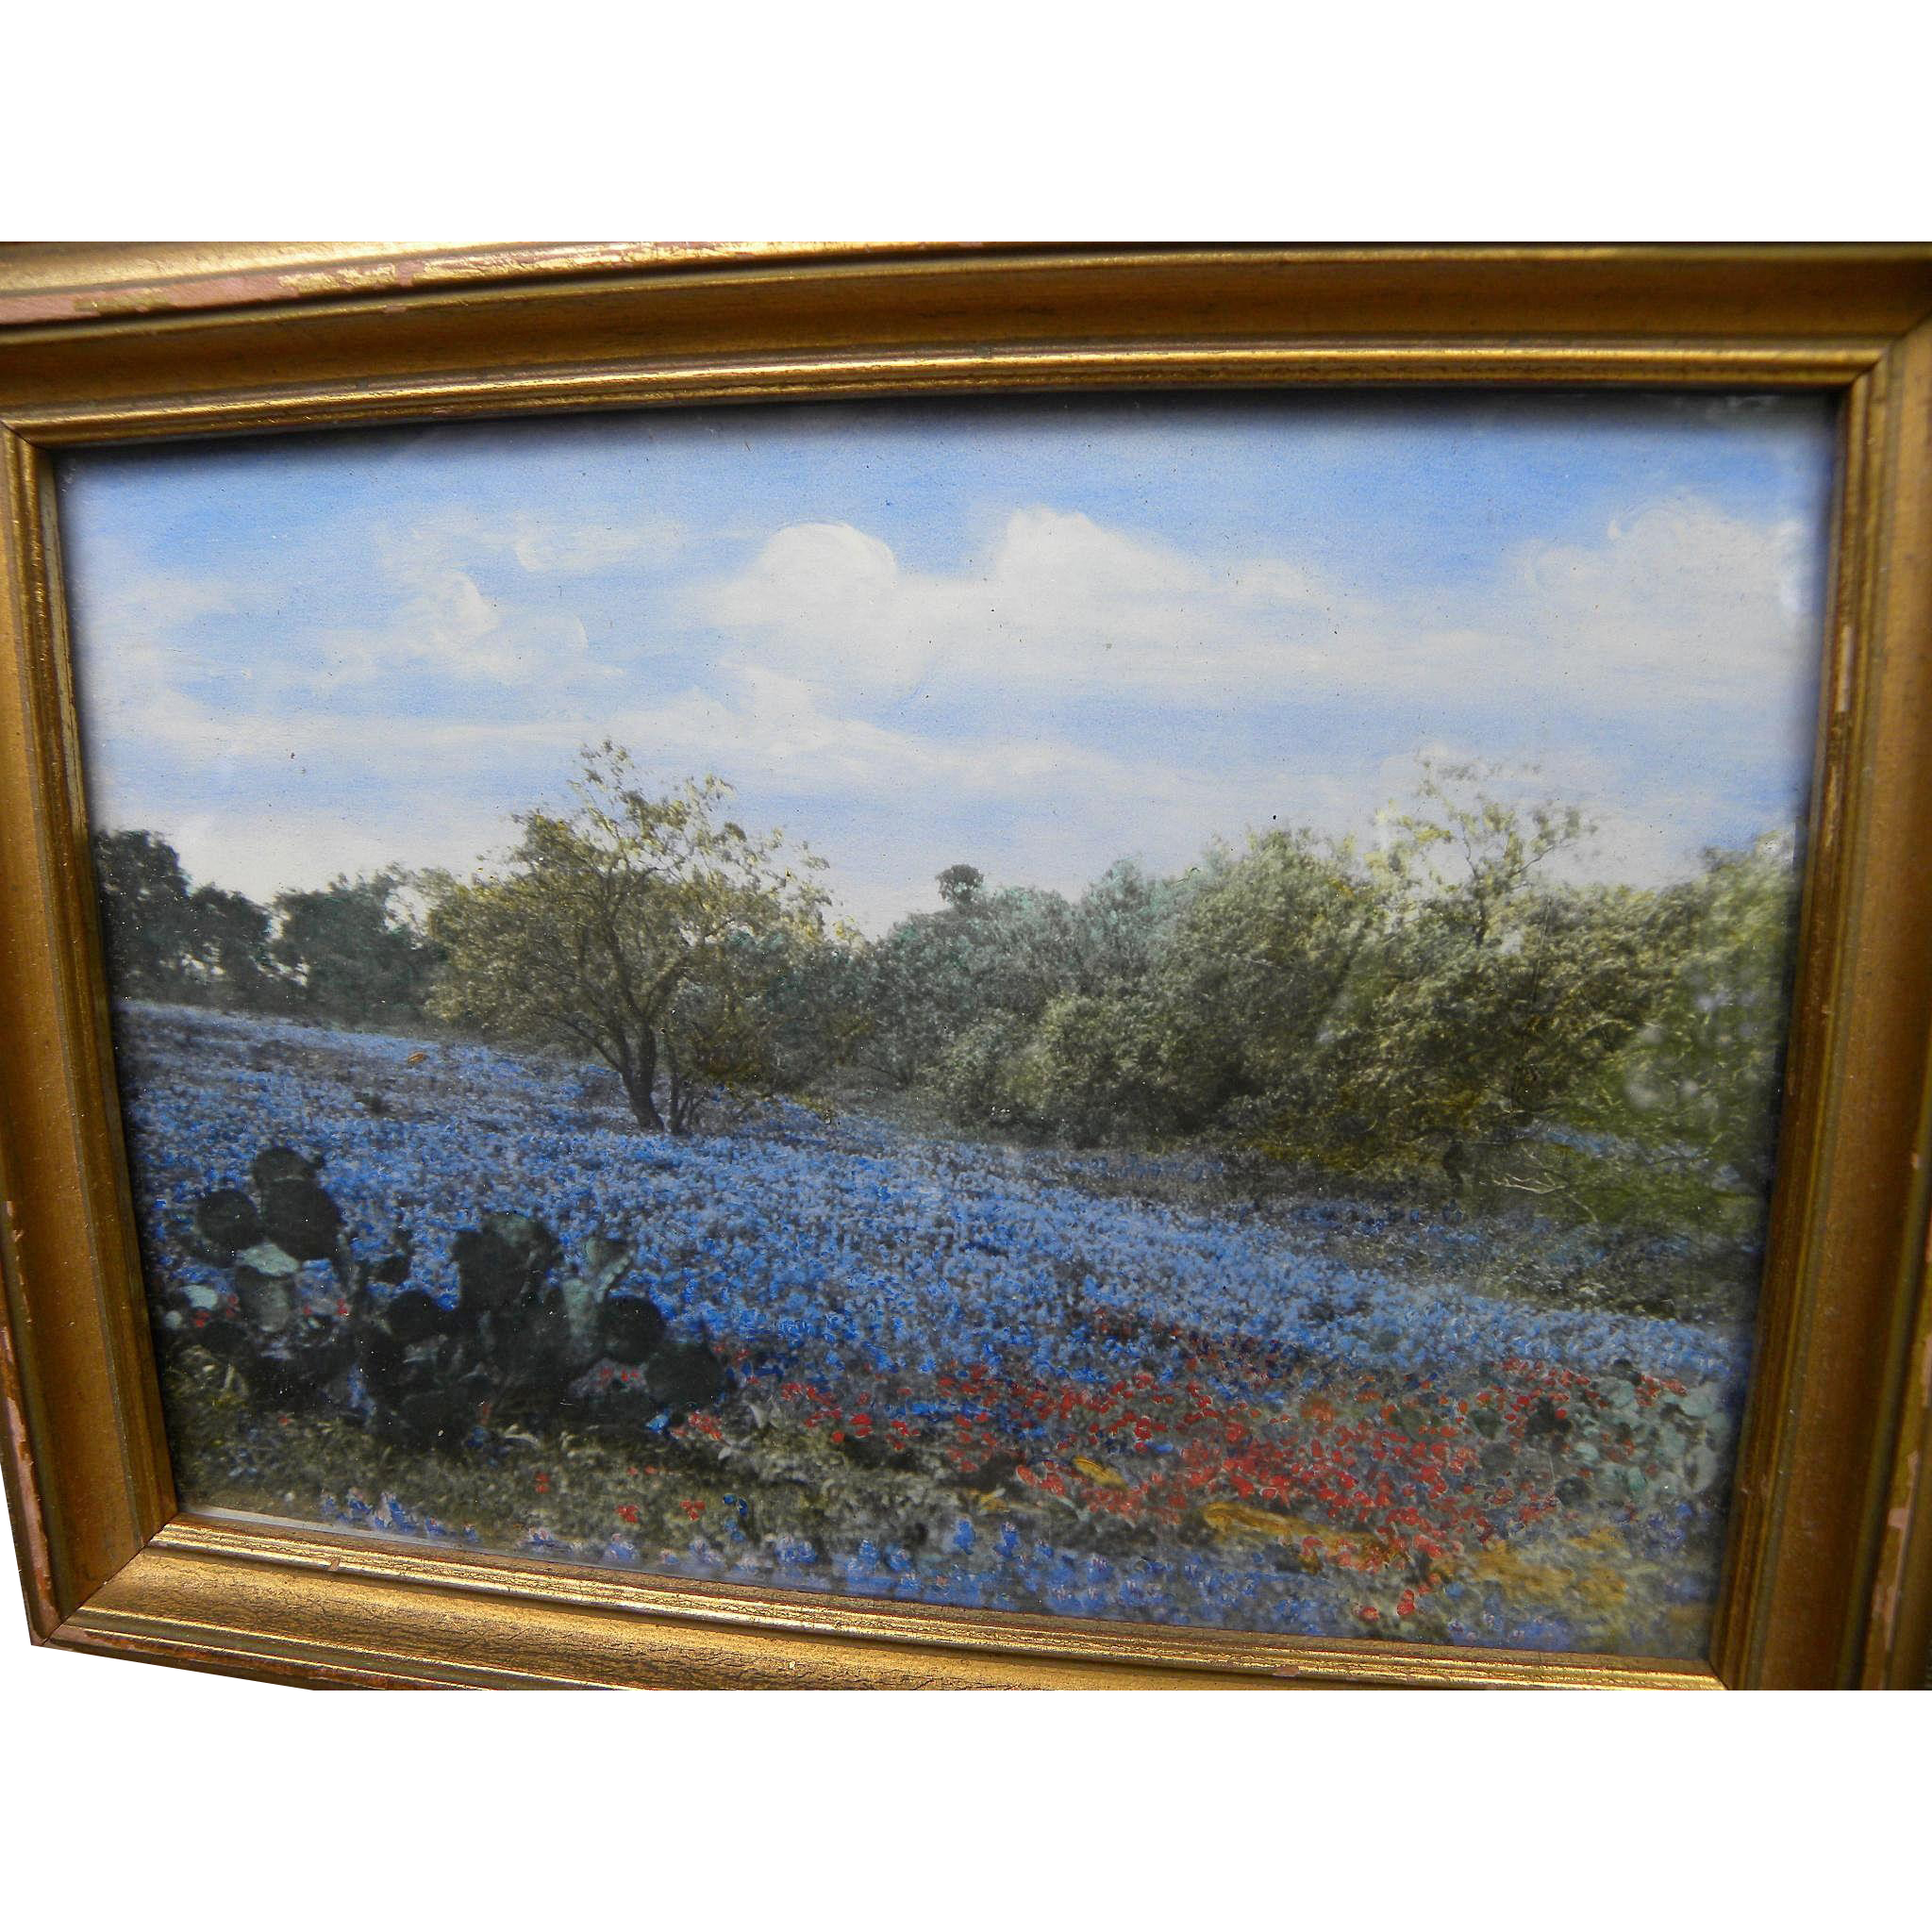 Texas Bluebonnet Landscape Hand Colored Vintage Photograph Jon Berg Fine Arts And More Ruby Lane